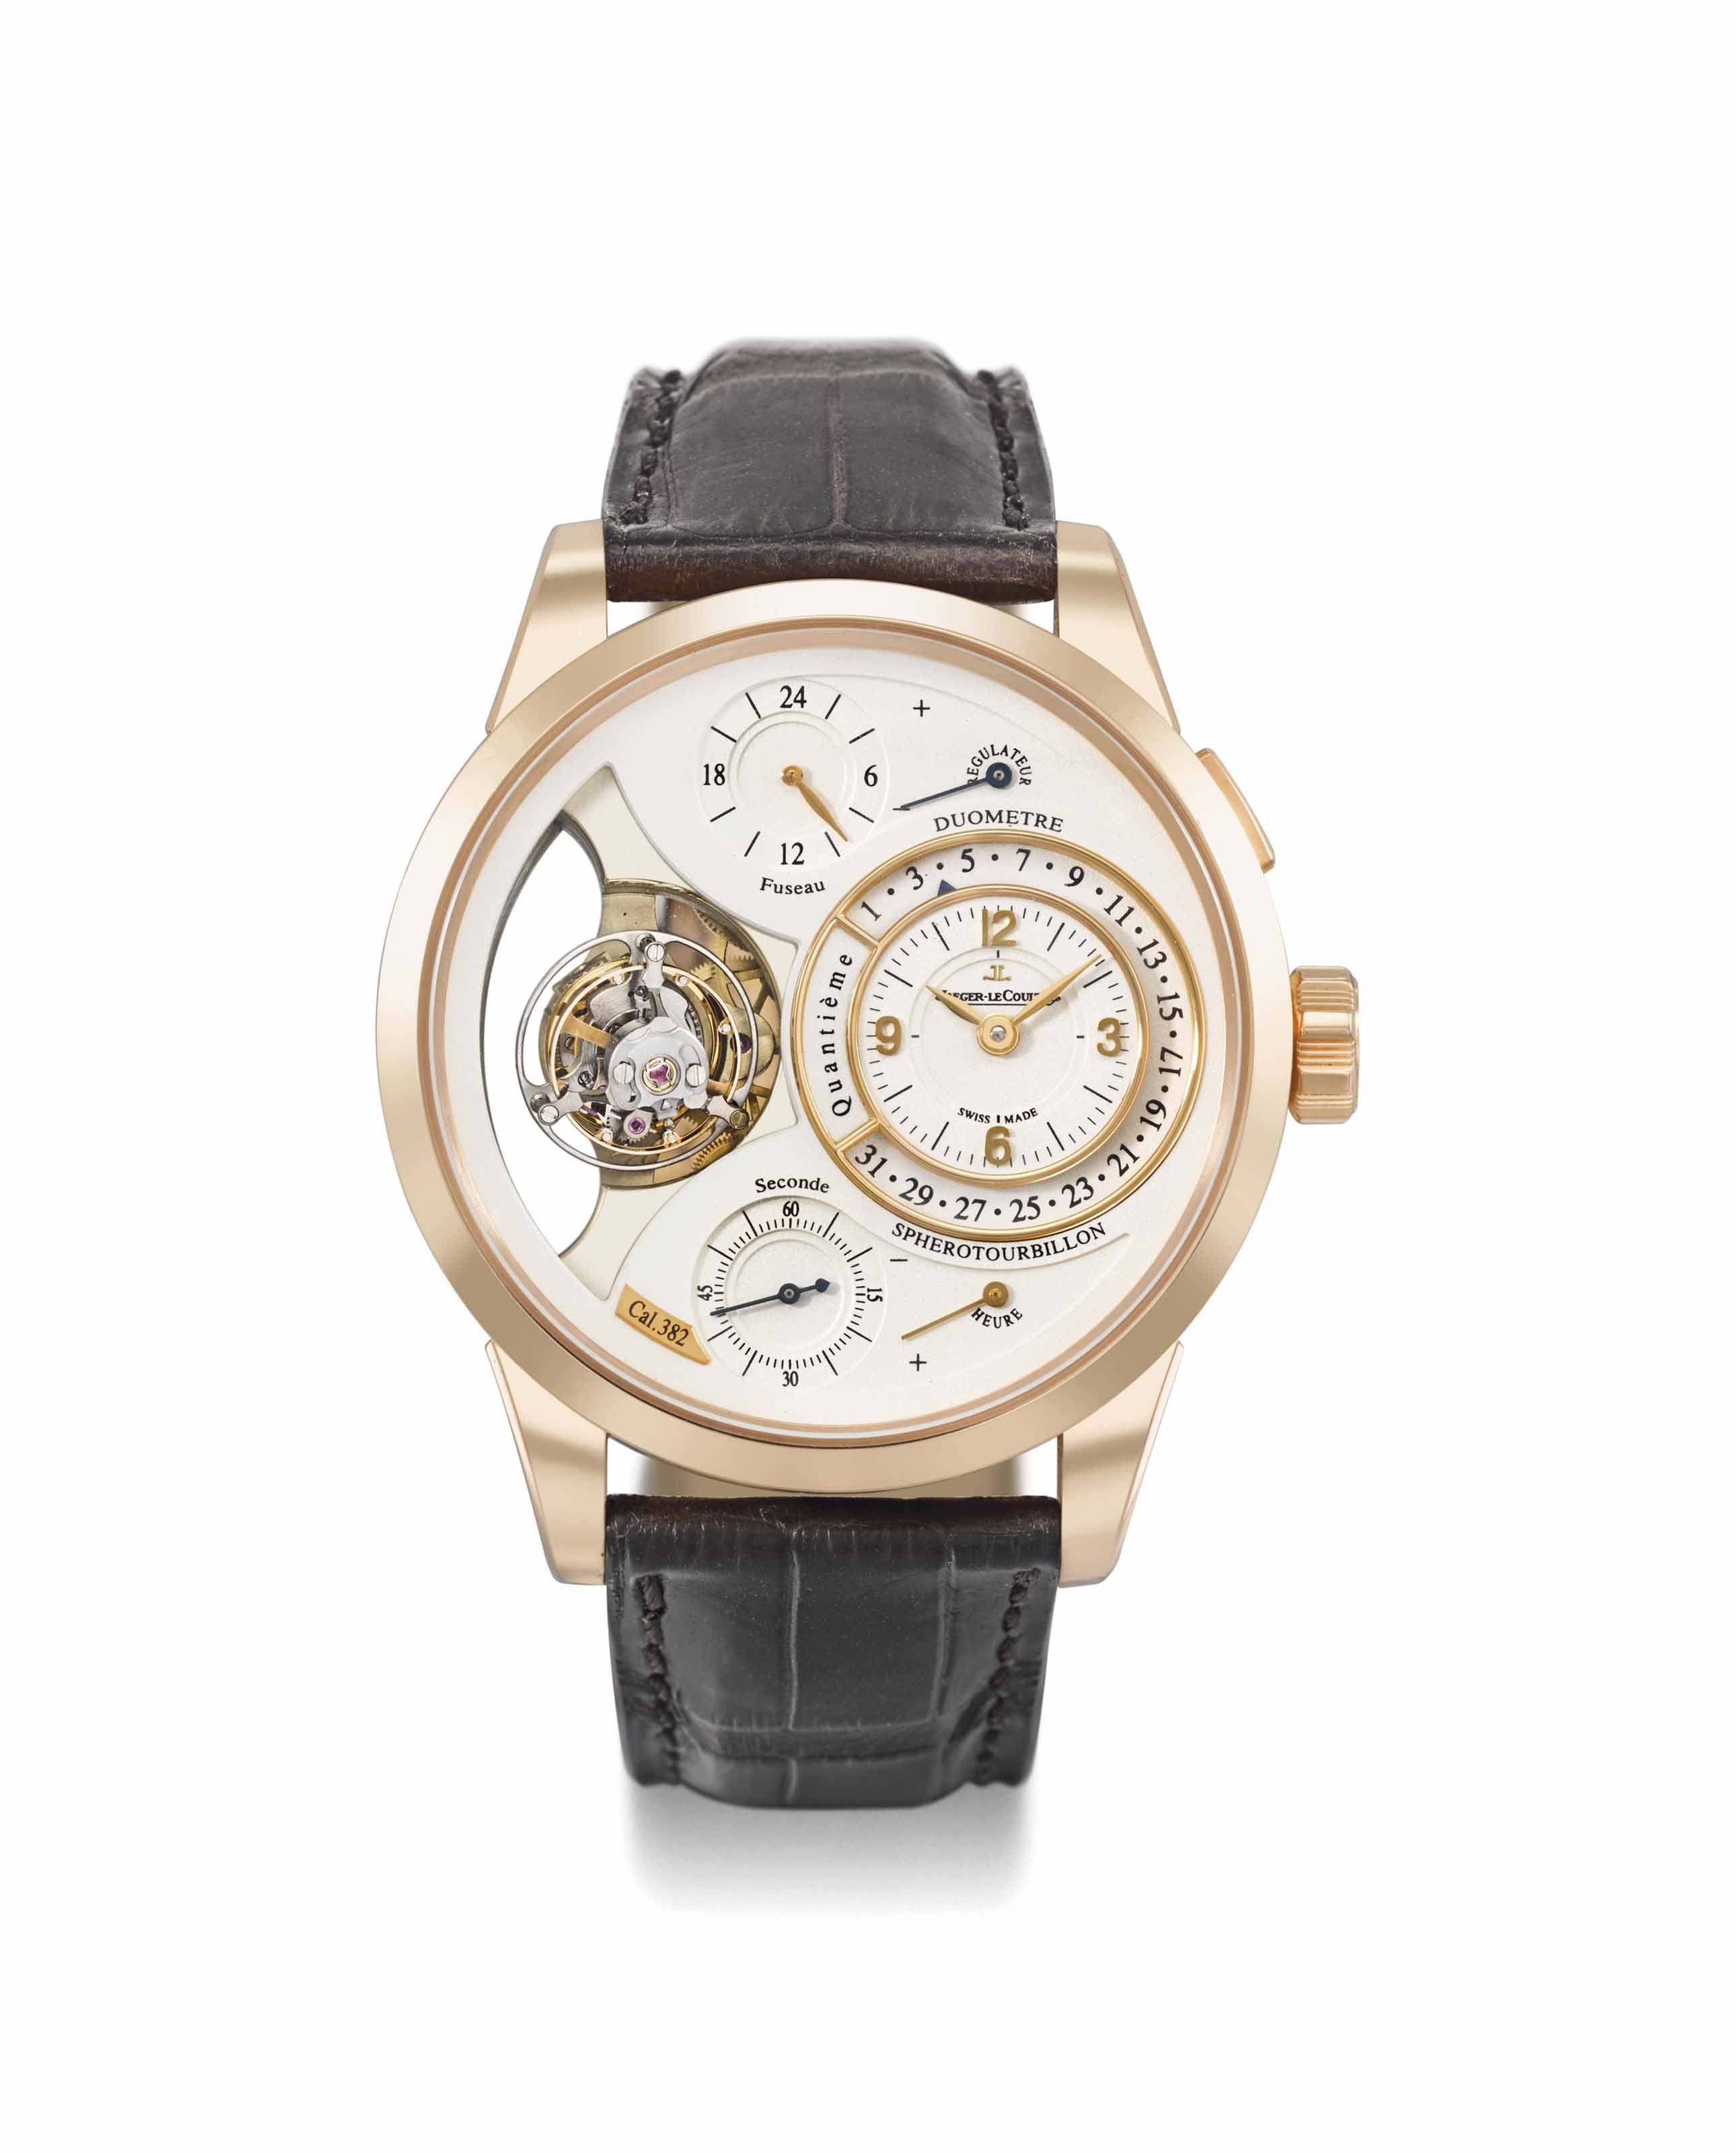 Jaeger-LeCoultre. A very rare and highly complicated 18K pink gold wristwatch with retrograde date, fly-back seconds, tourbillon, guarantee and box